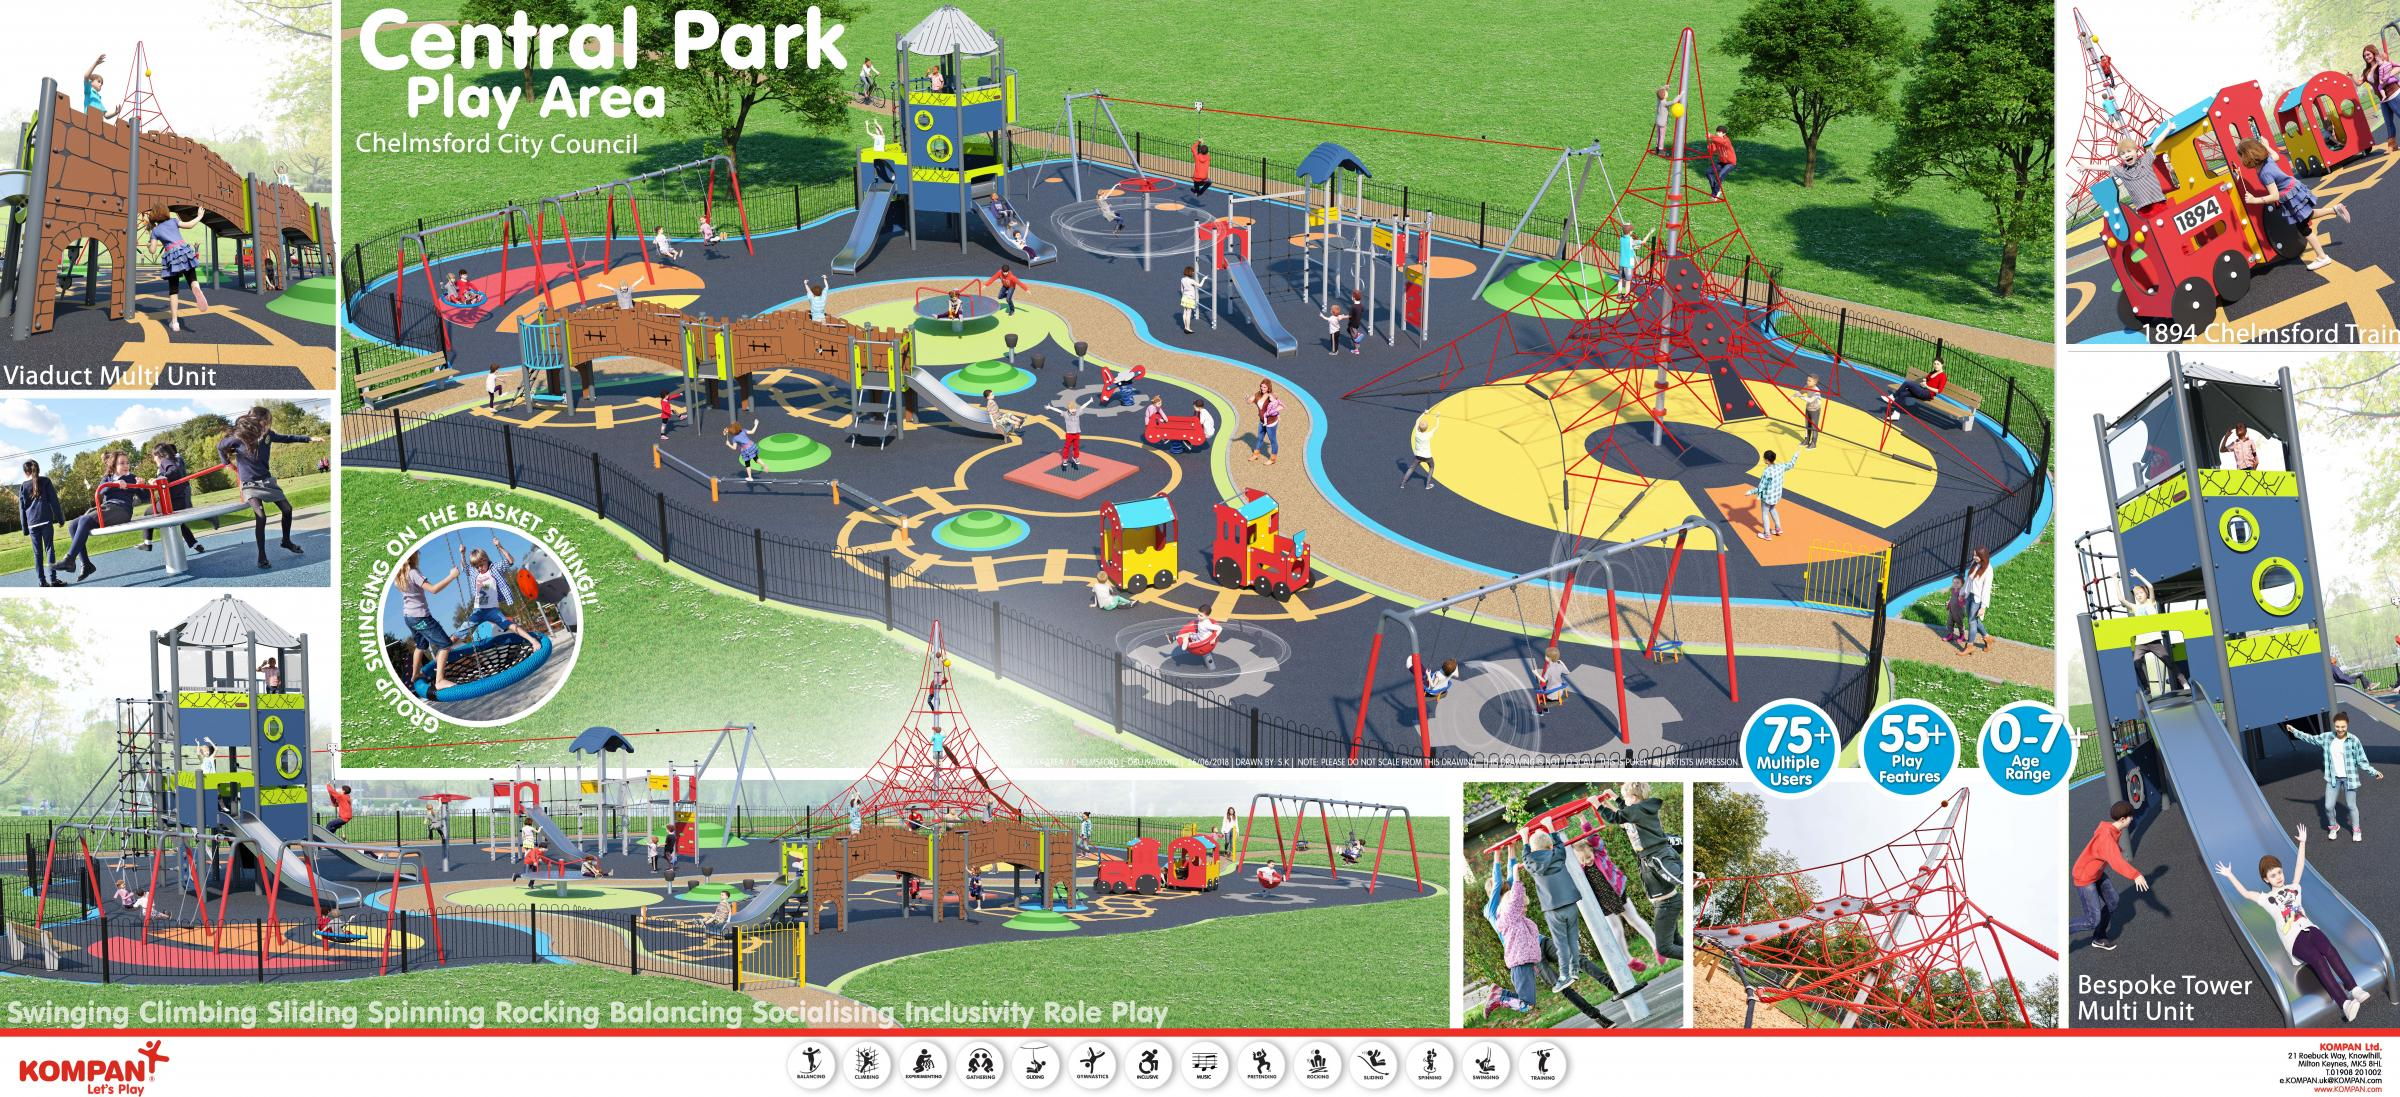 new play area in Central Park